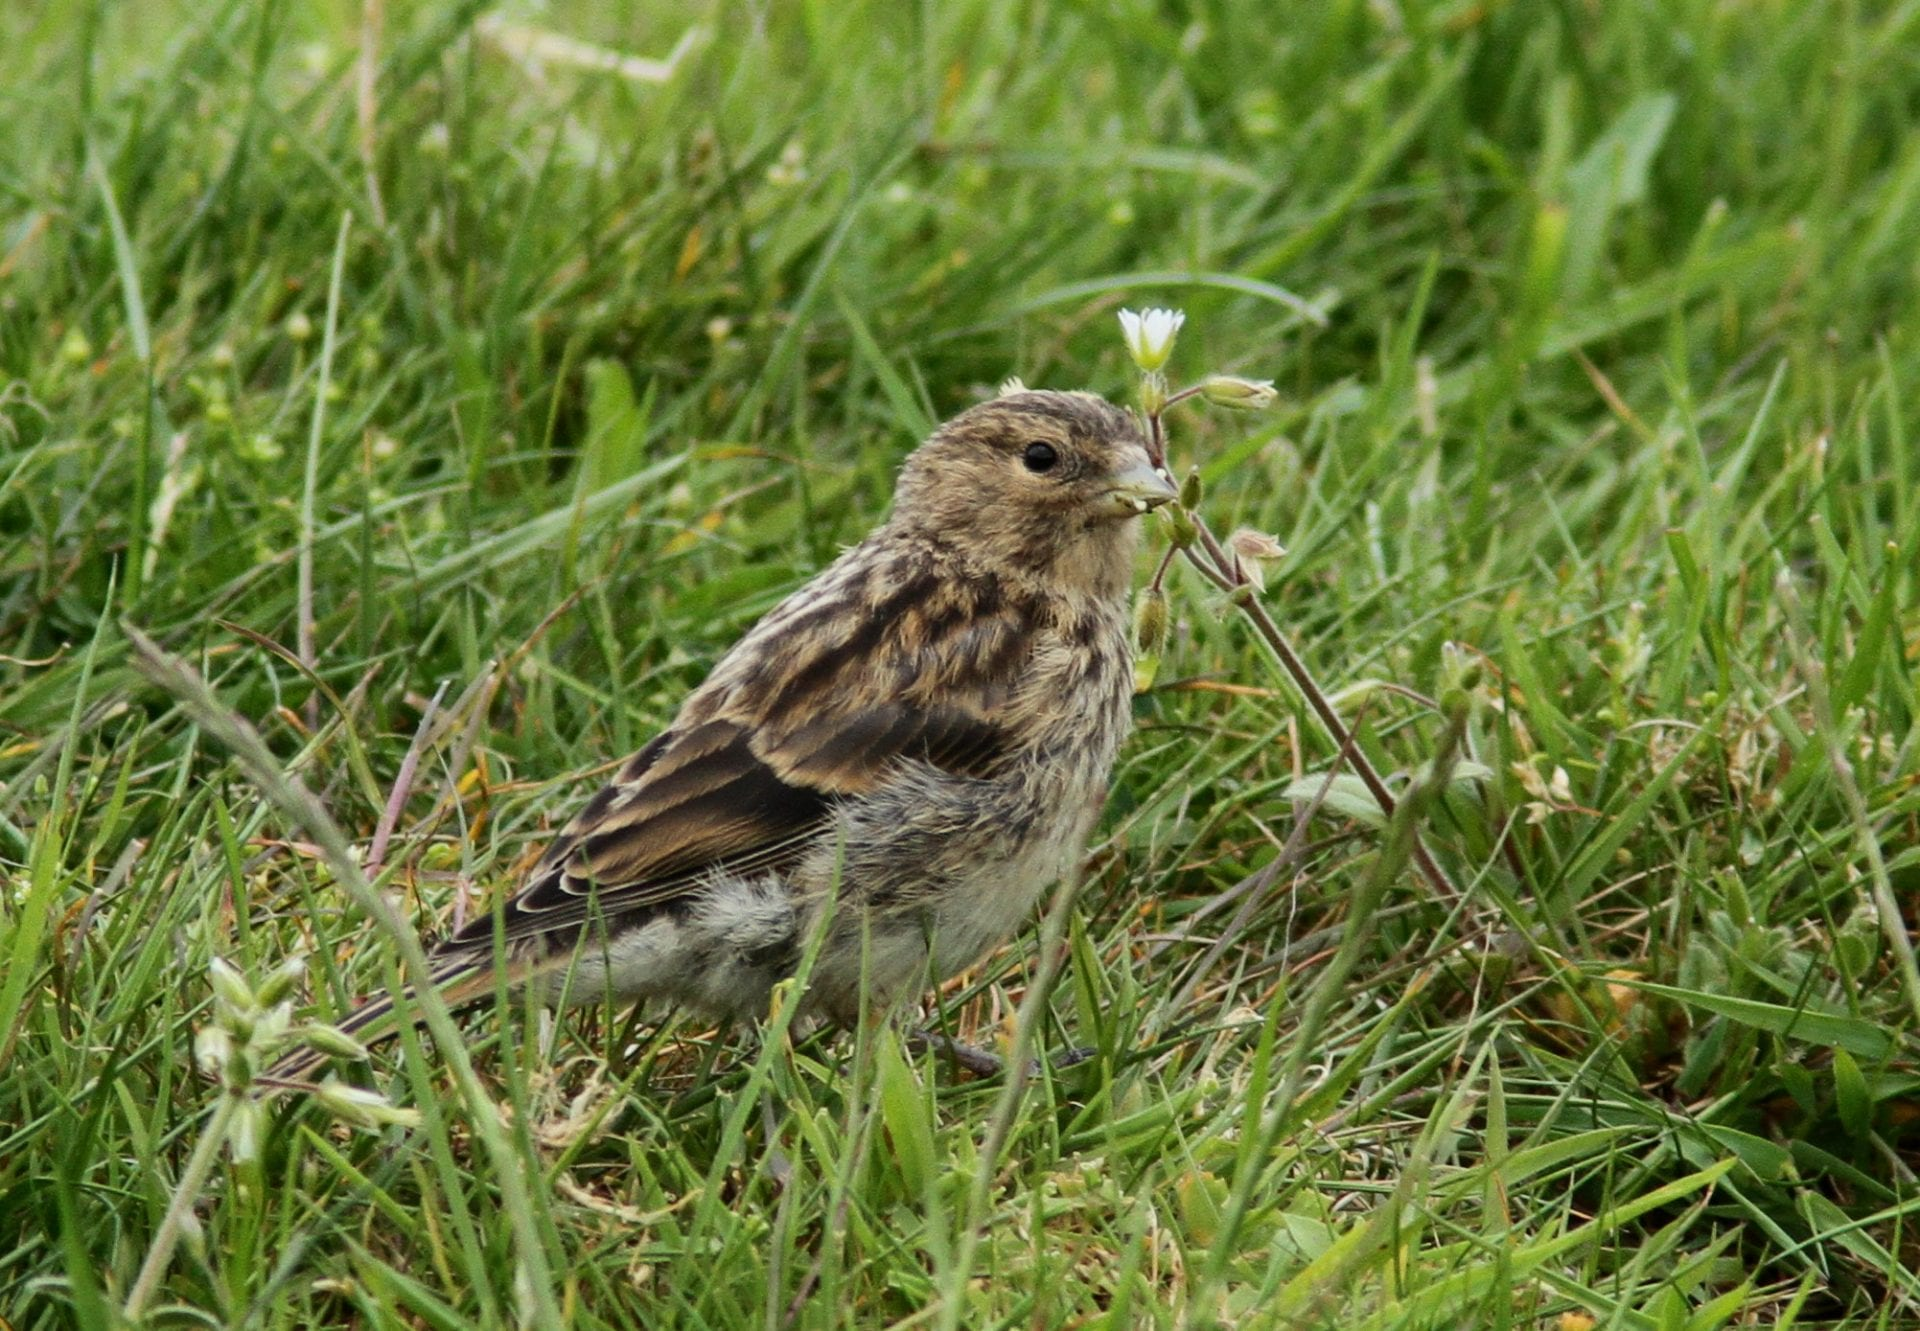 juvenile-twite-standing-in-grass